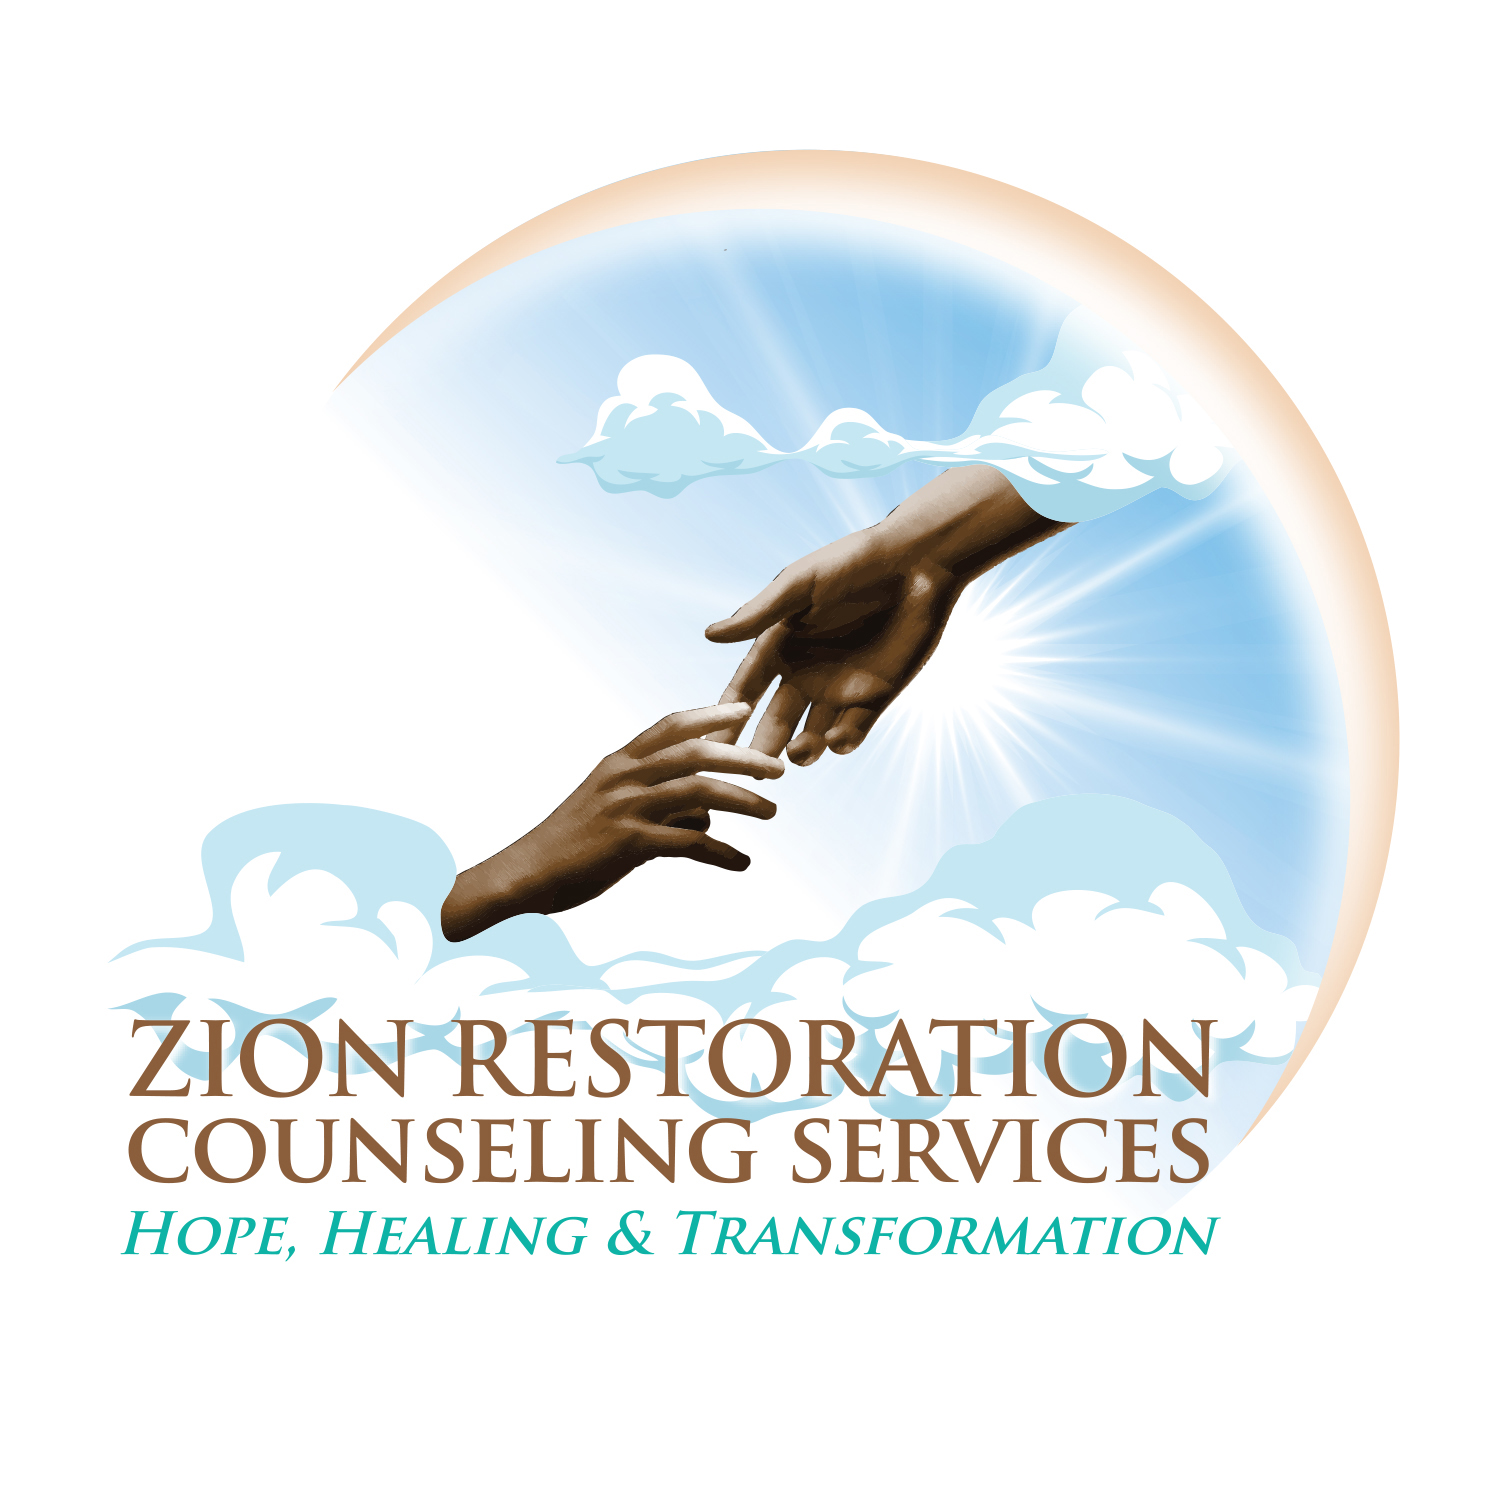 Zion Restoration Counseling Services logo